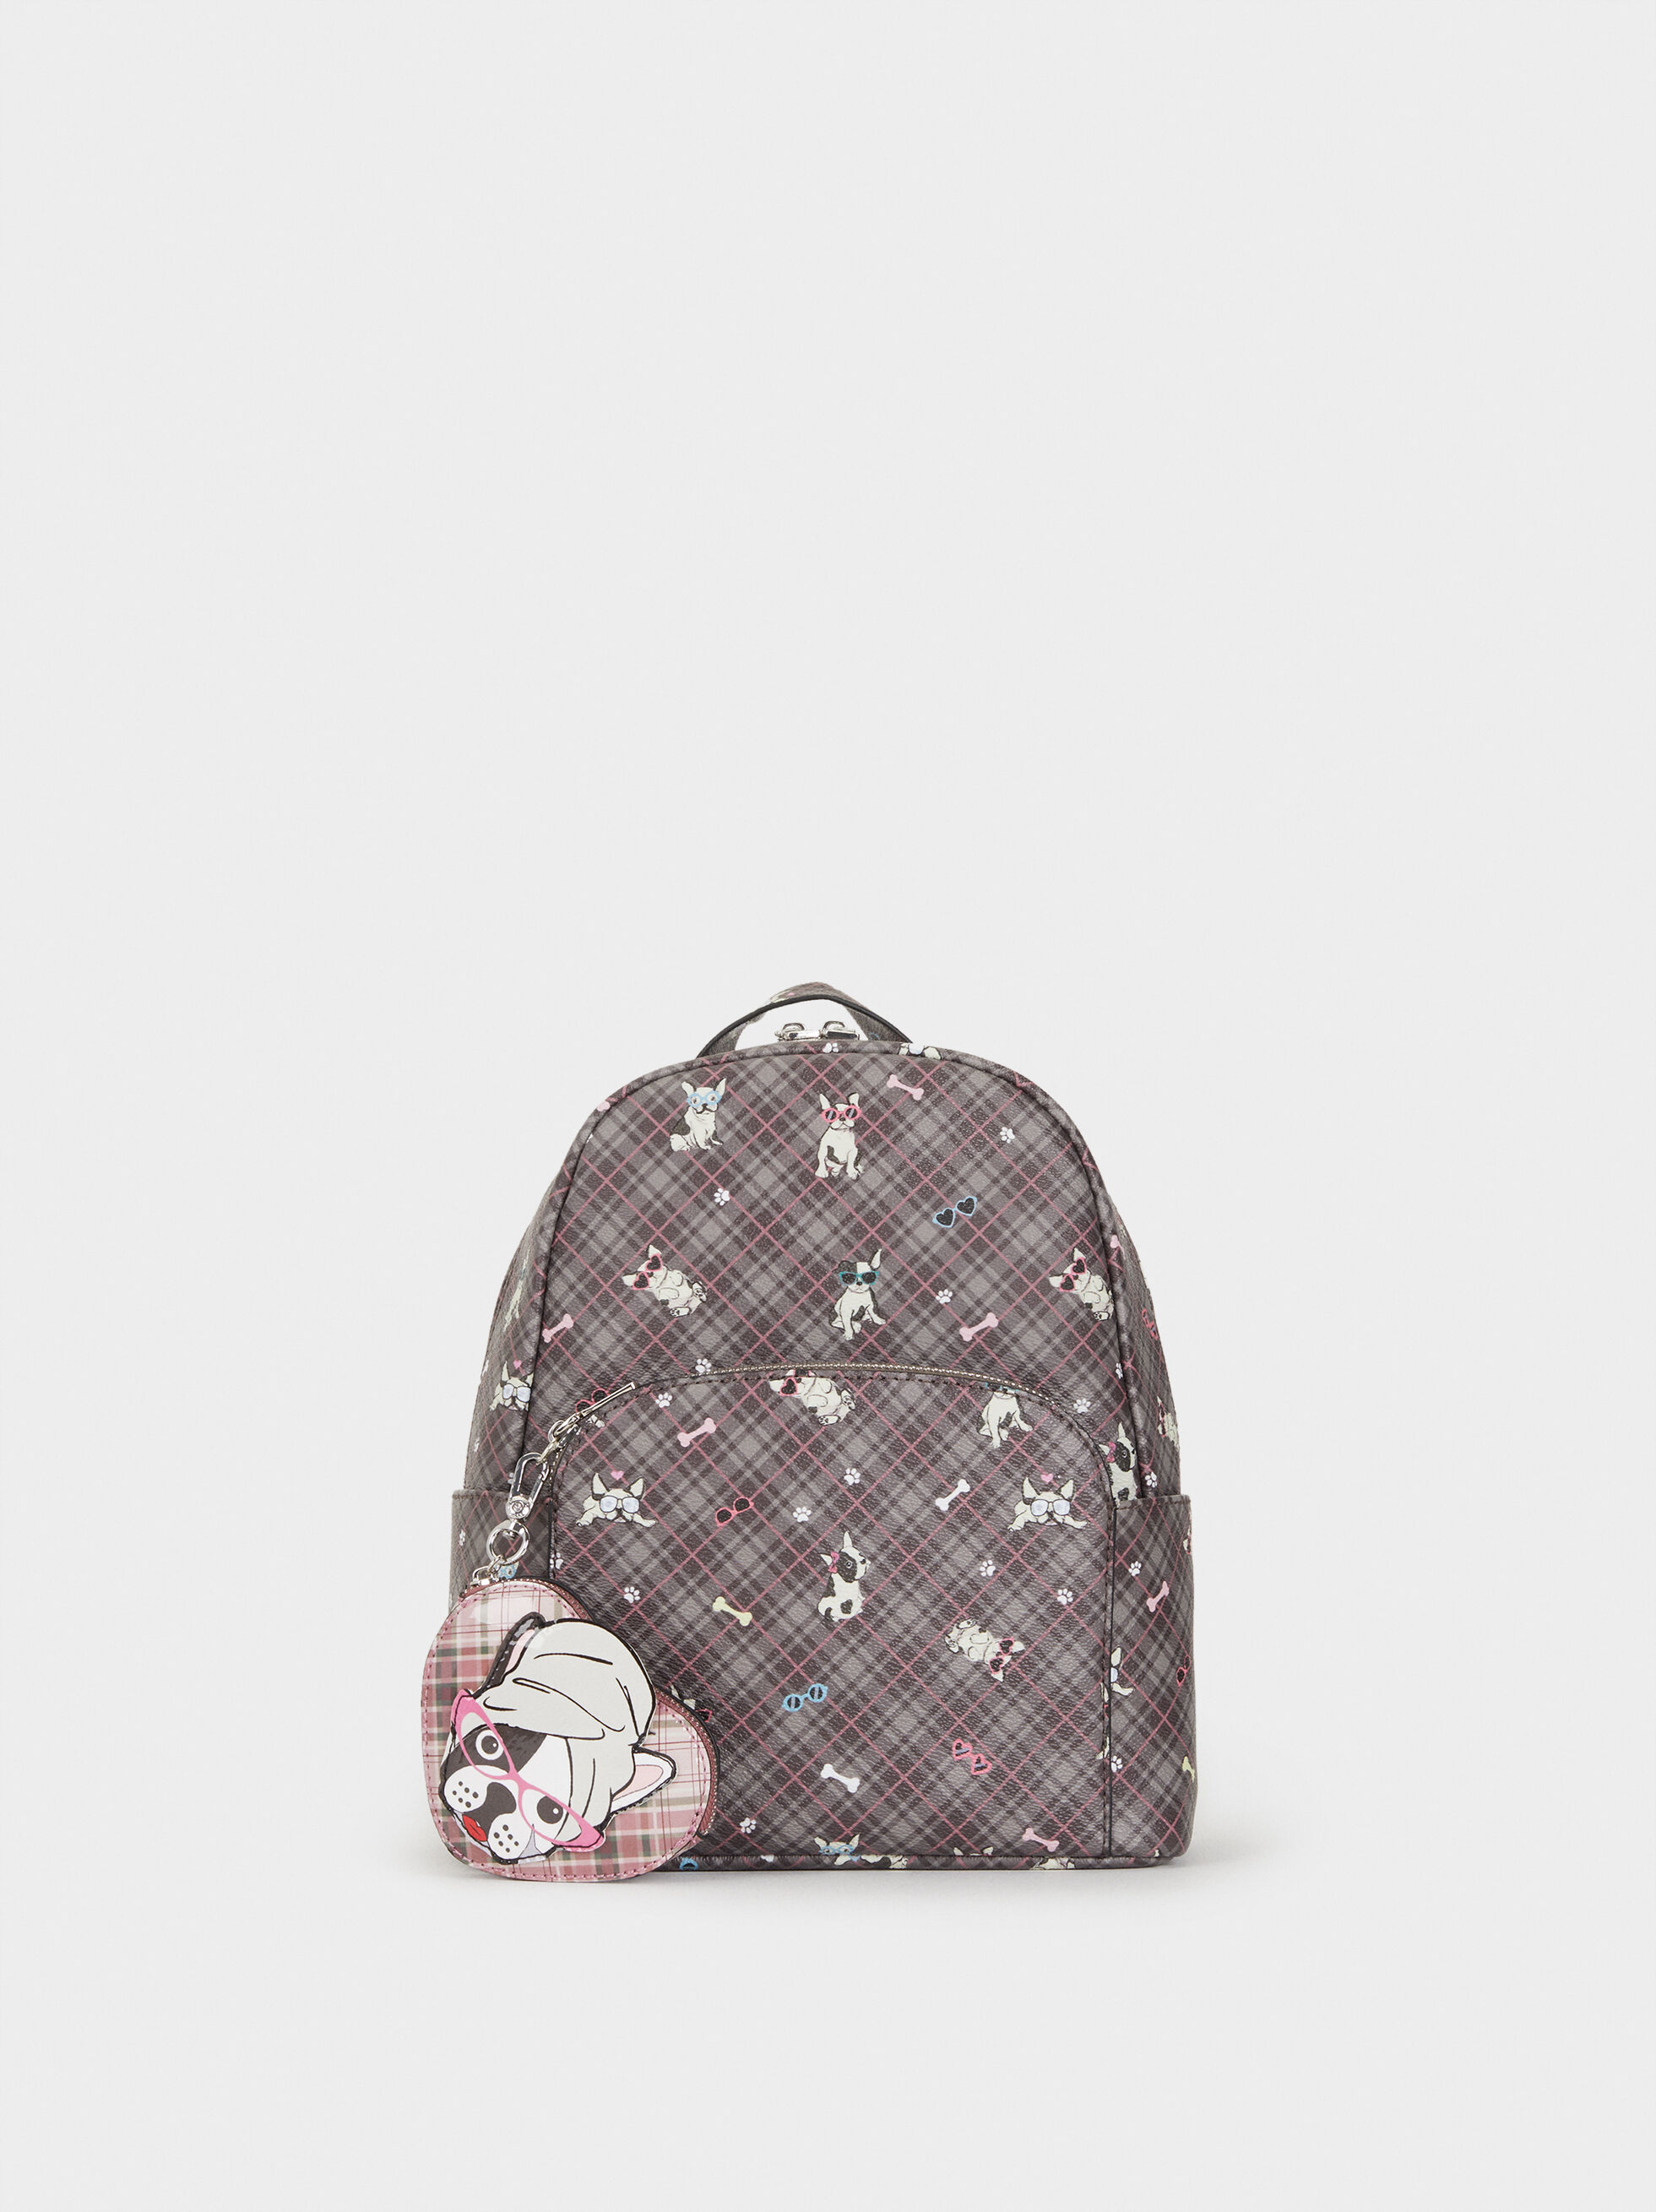 Printed Backpack, , hi-res